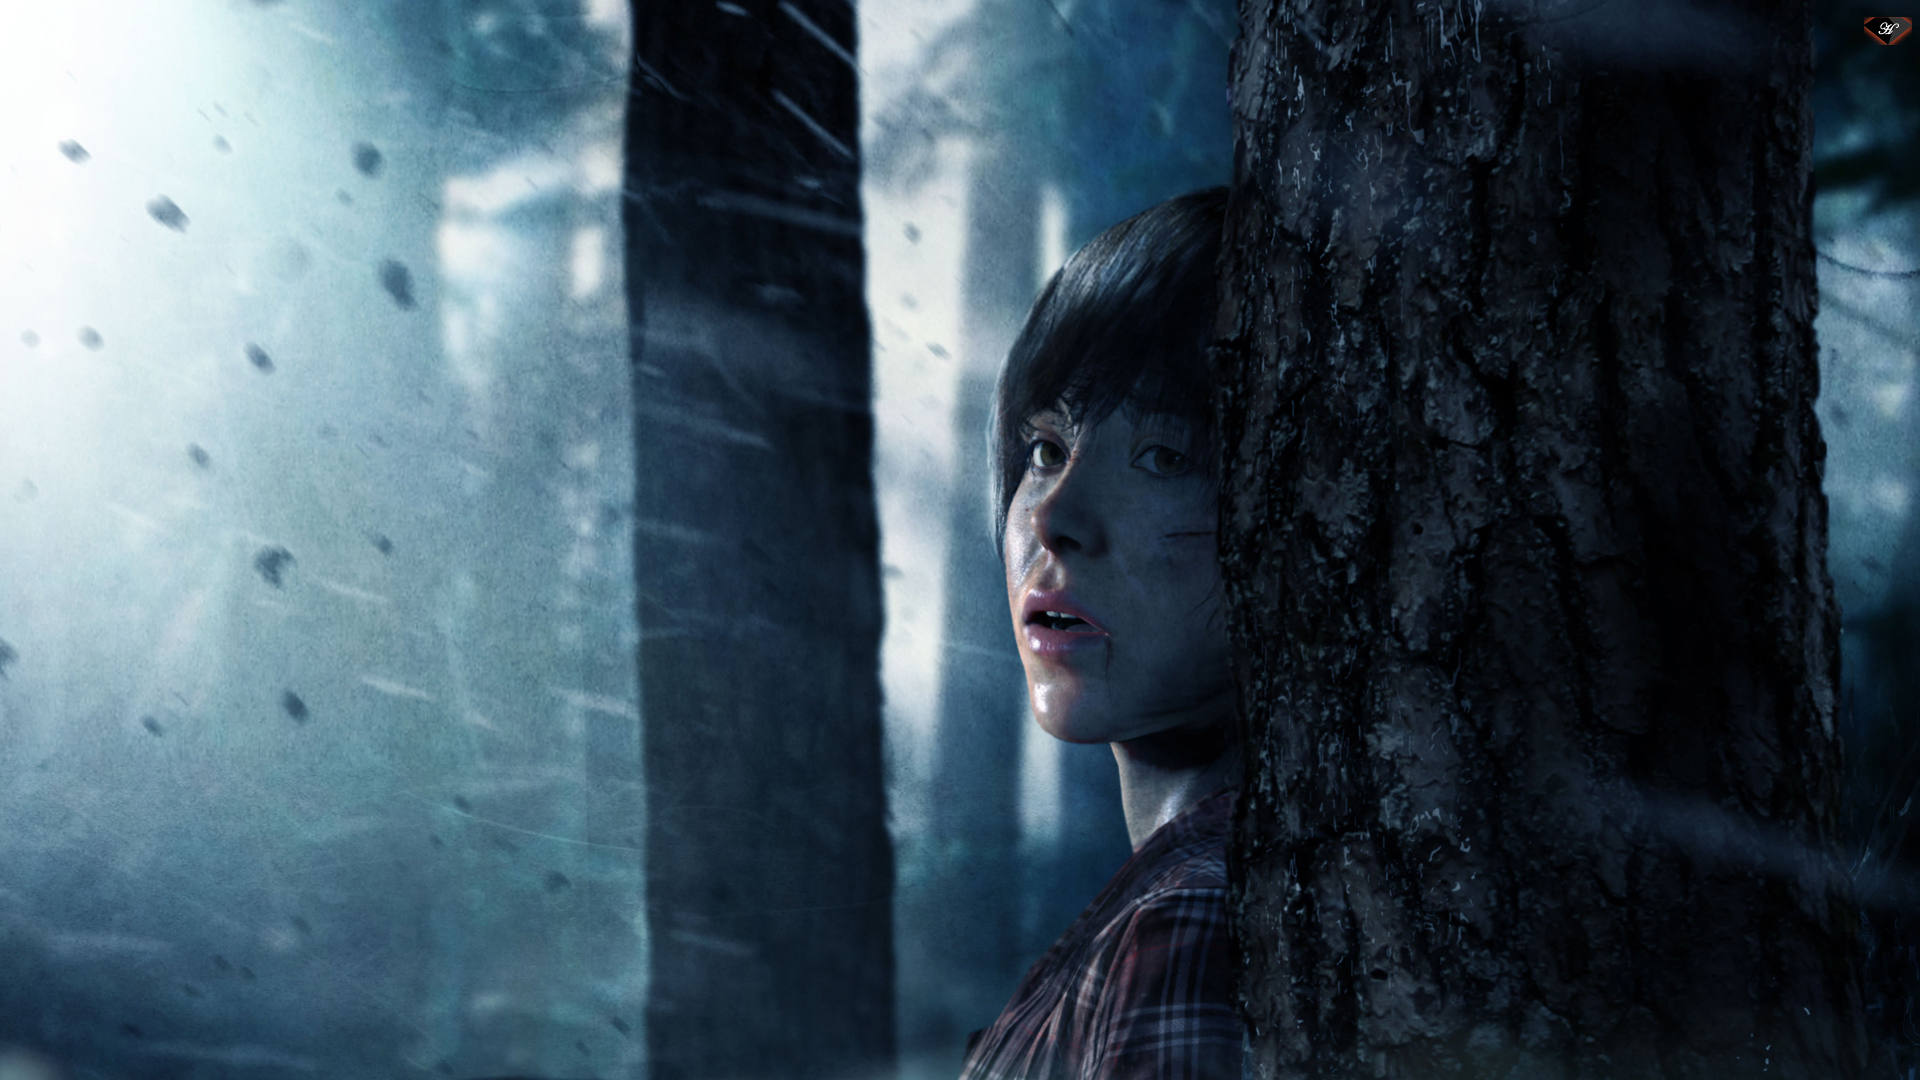 'Beyond: Two Souls' uses new engine